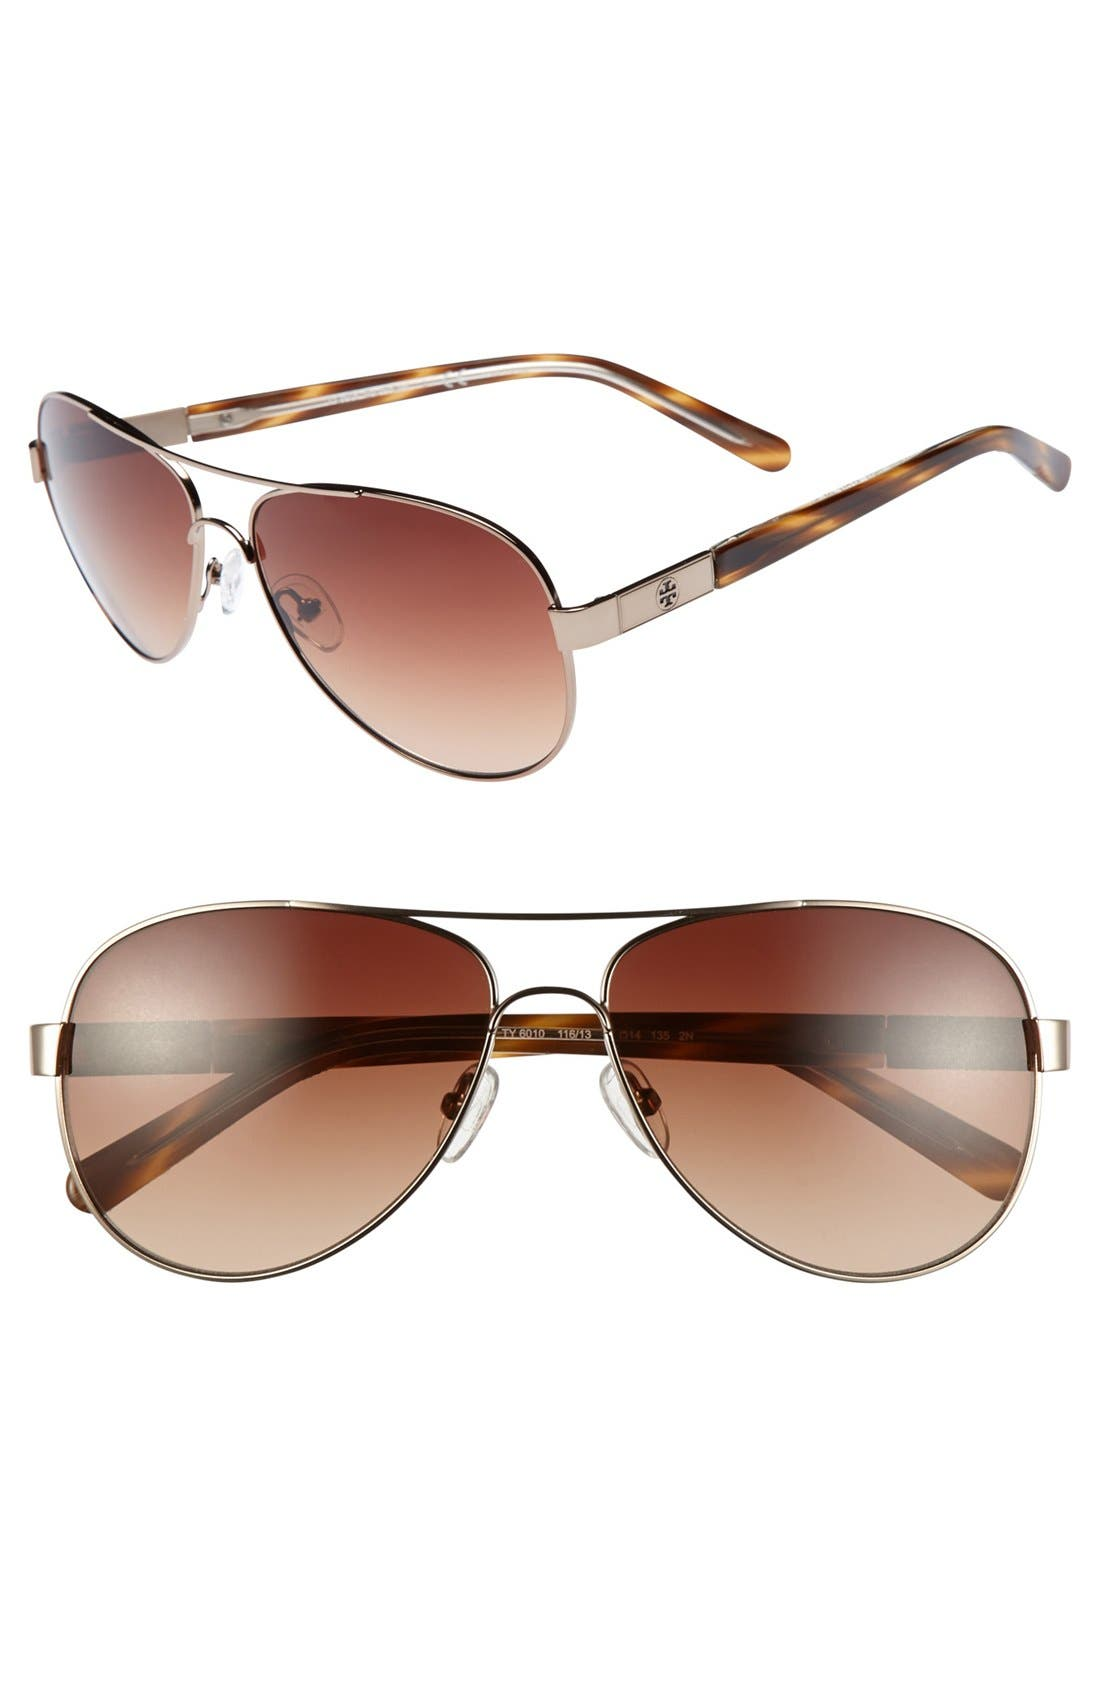 Main Image - Tory Burch 57mm Metal Aviator Sunglasses with Resin Temples